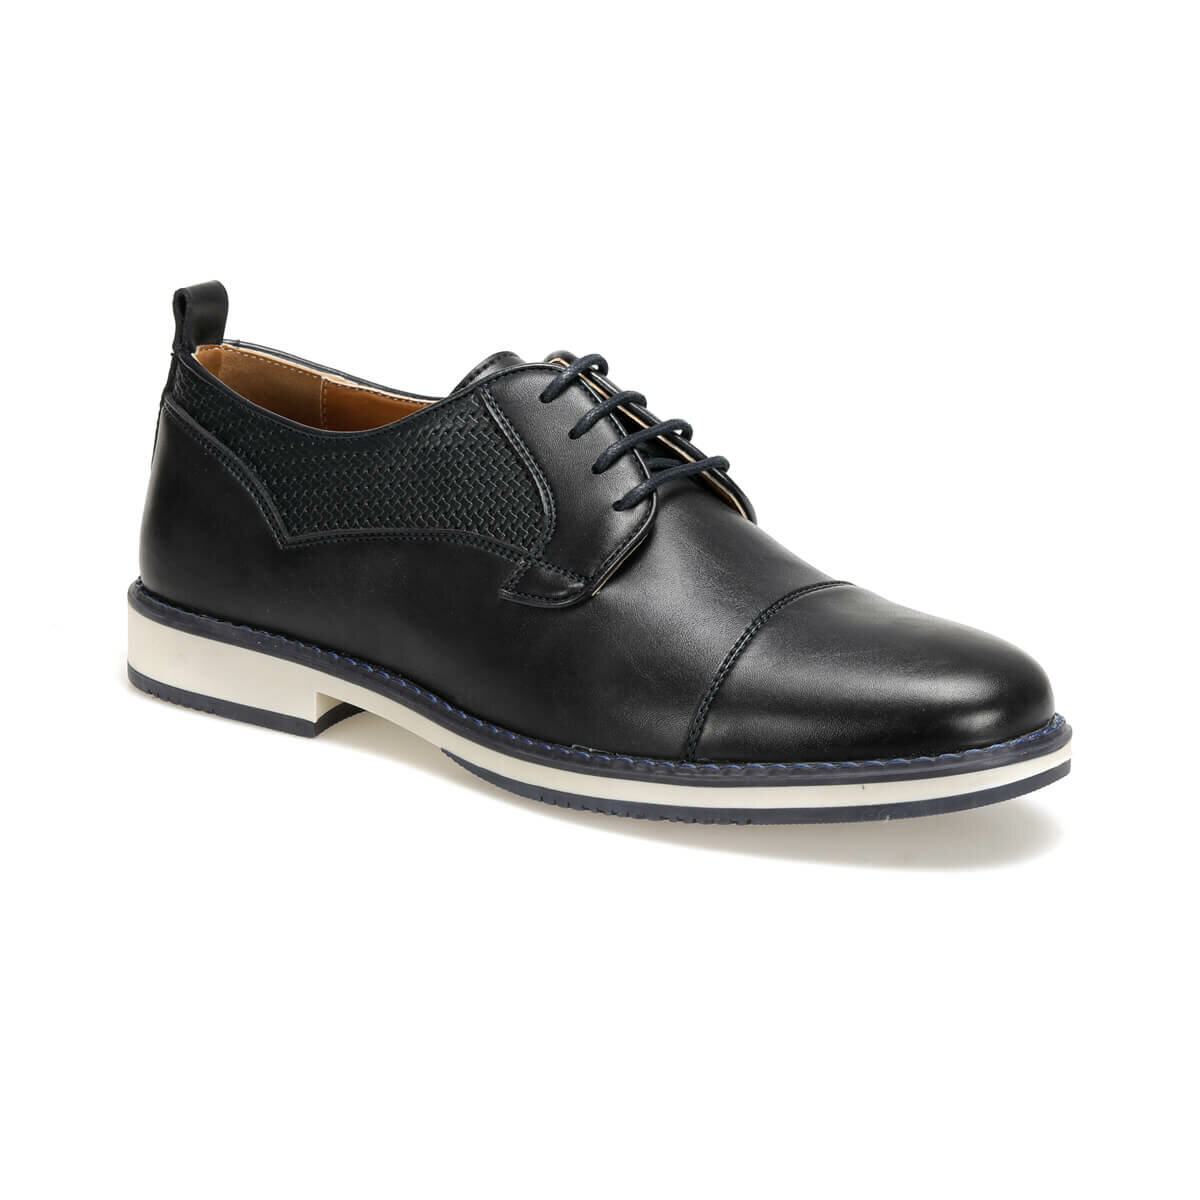 FLO 71419-3 Navy Blue Men 'S Classic Shoes-Styles